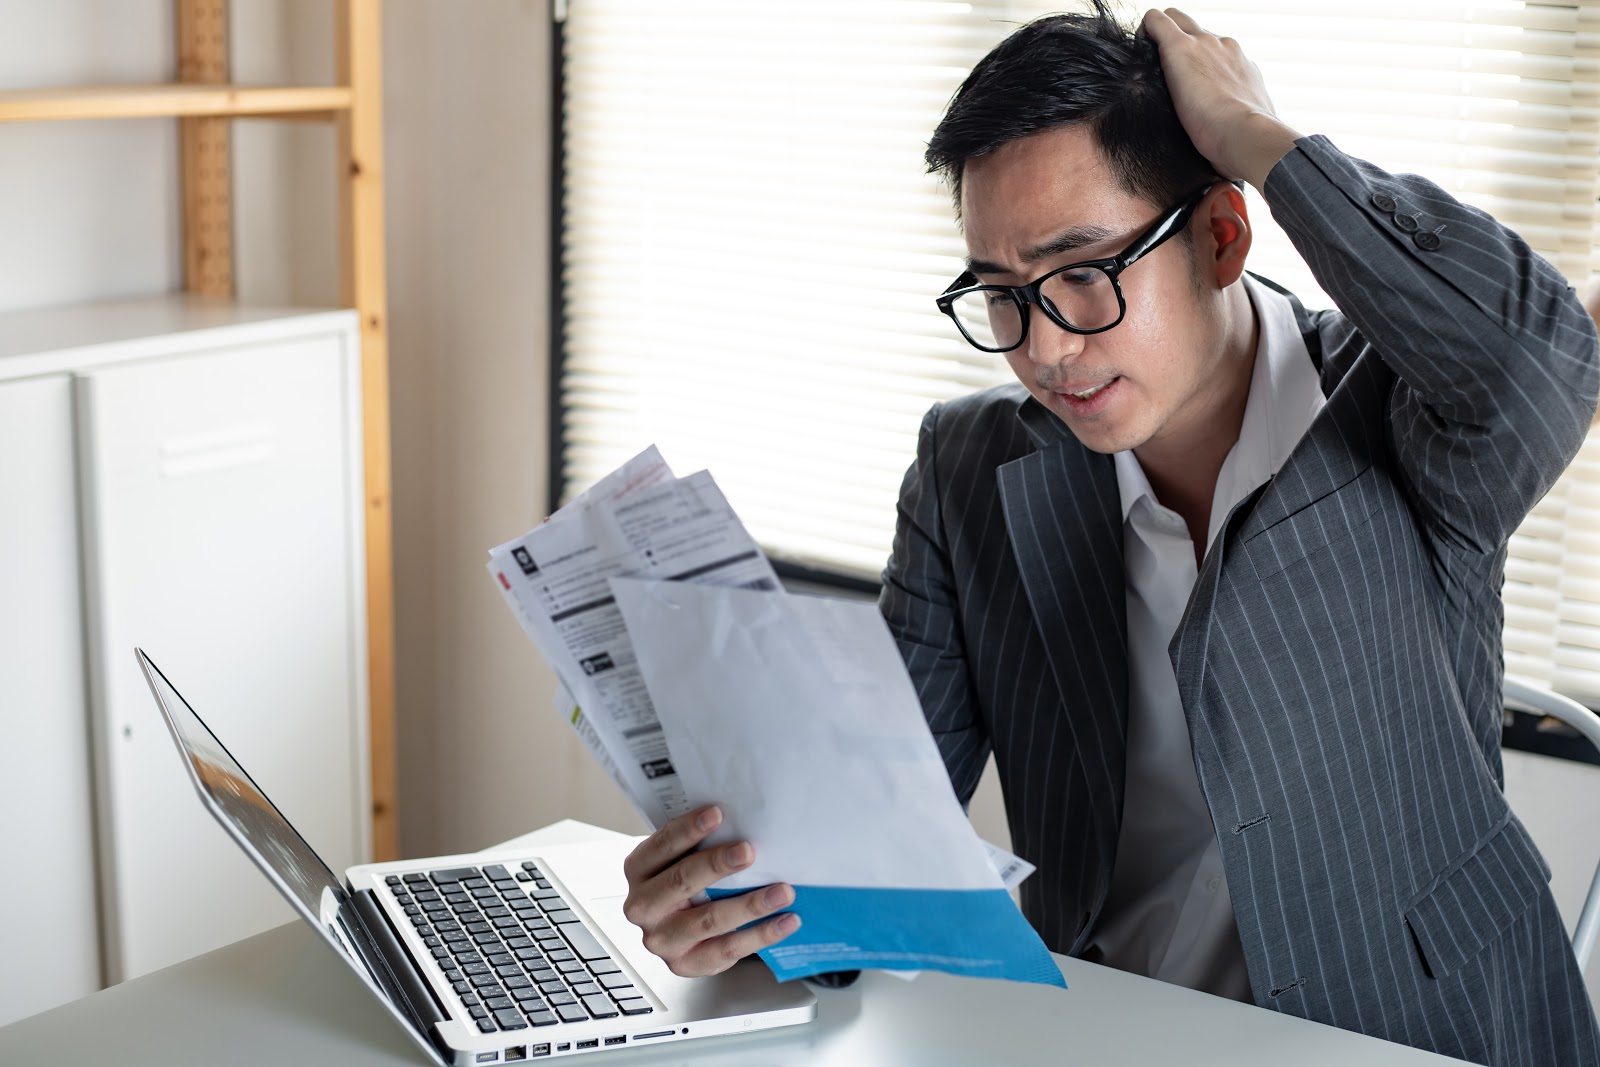 Credit card hardship program: Confused man looking at bills